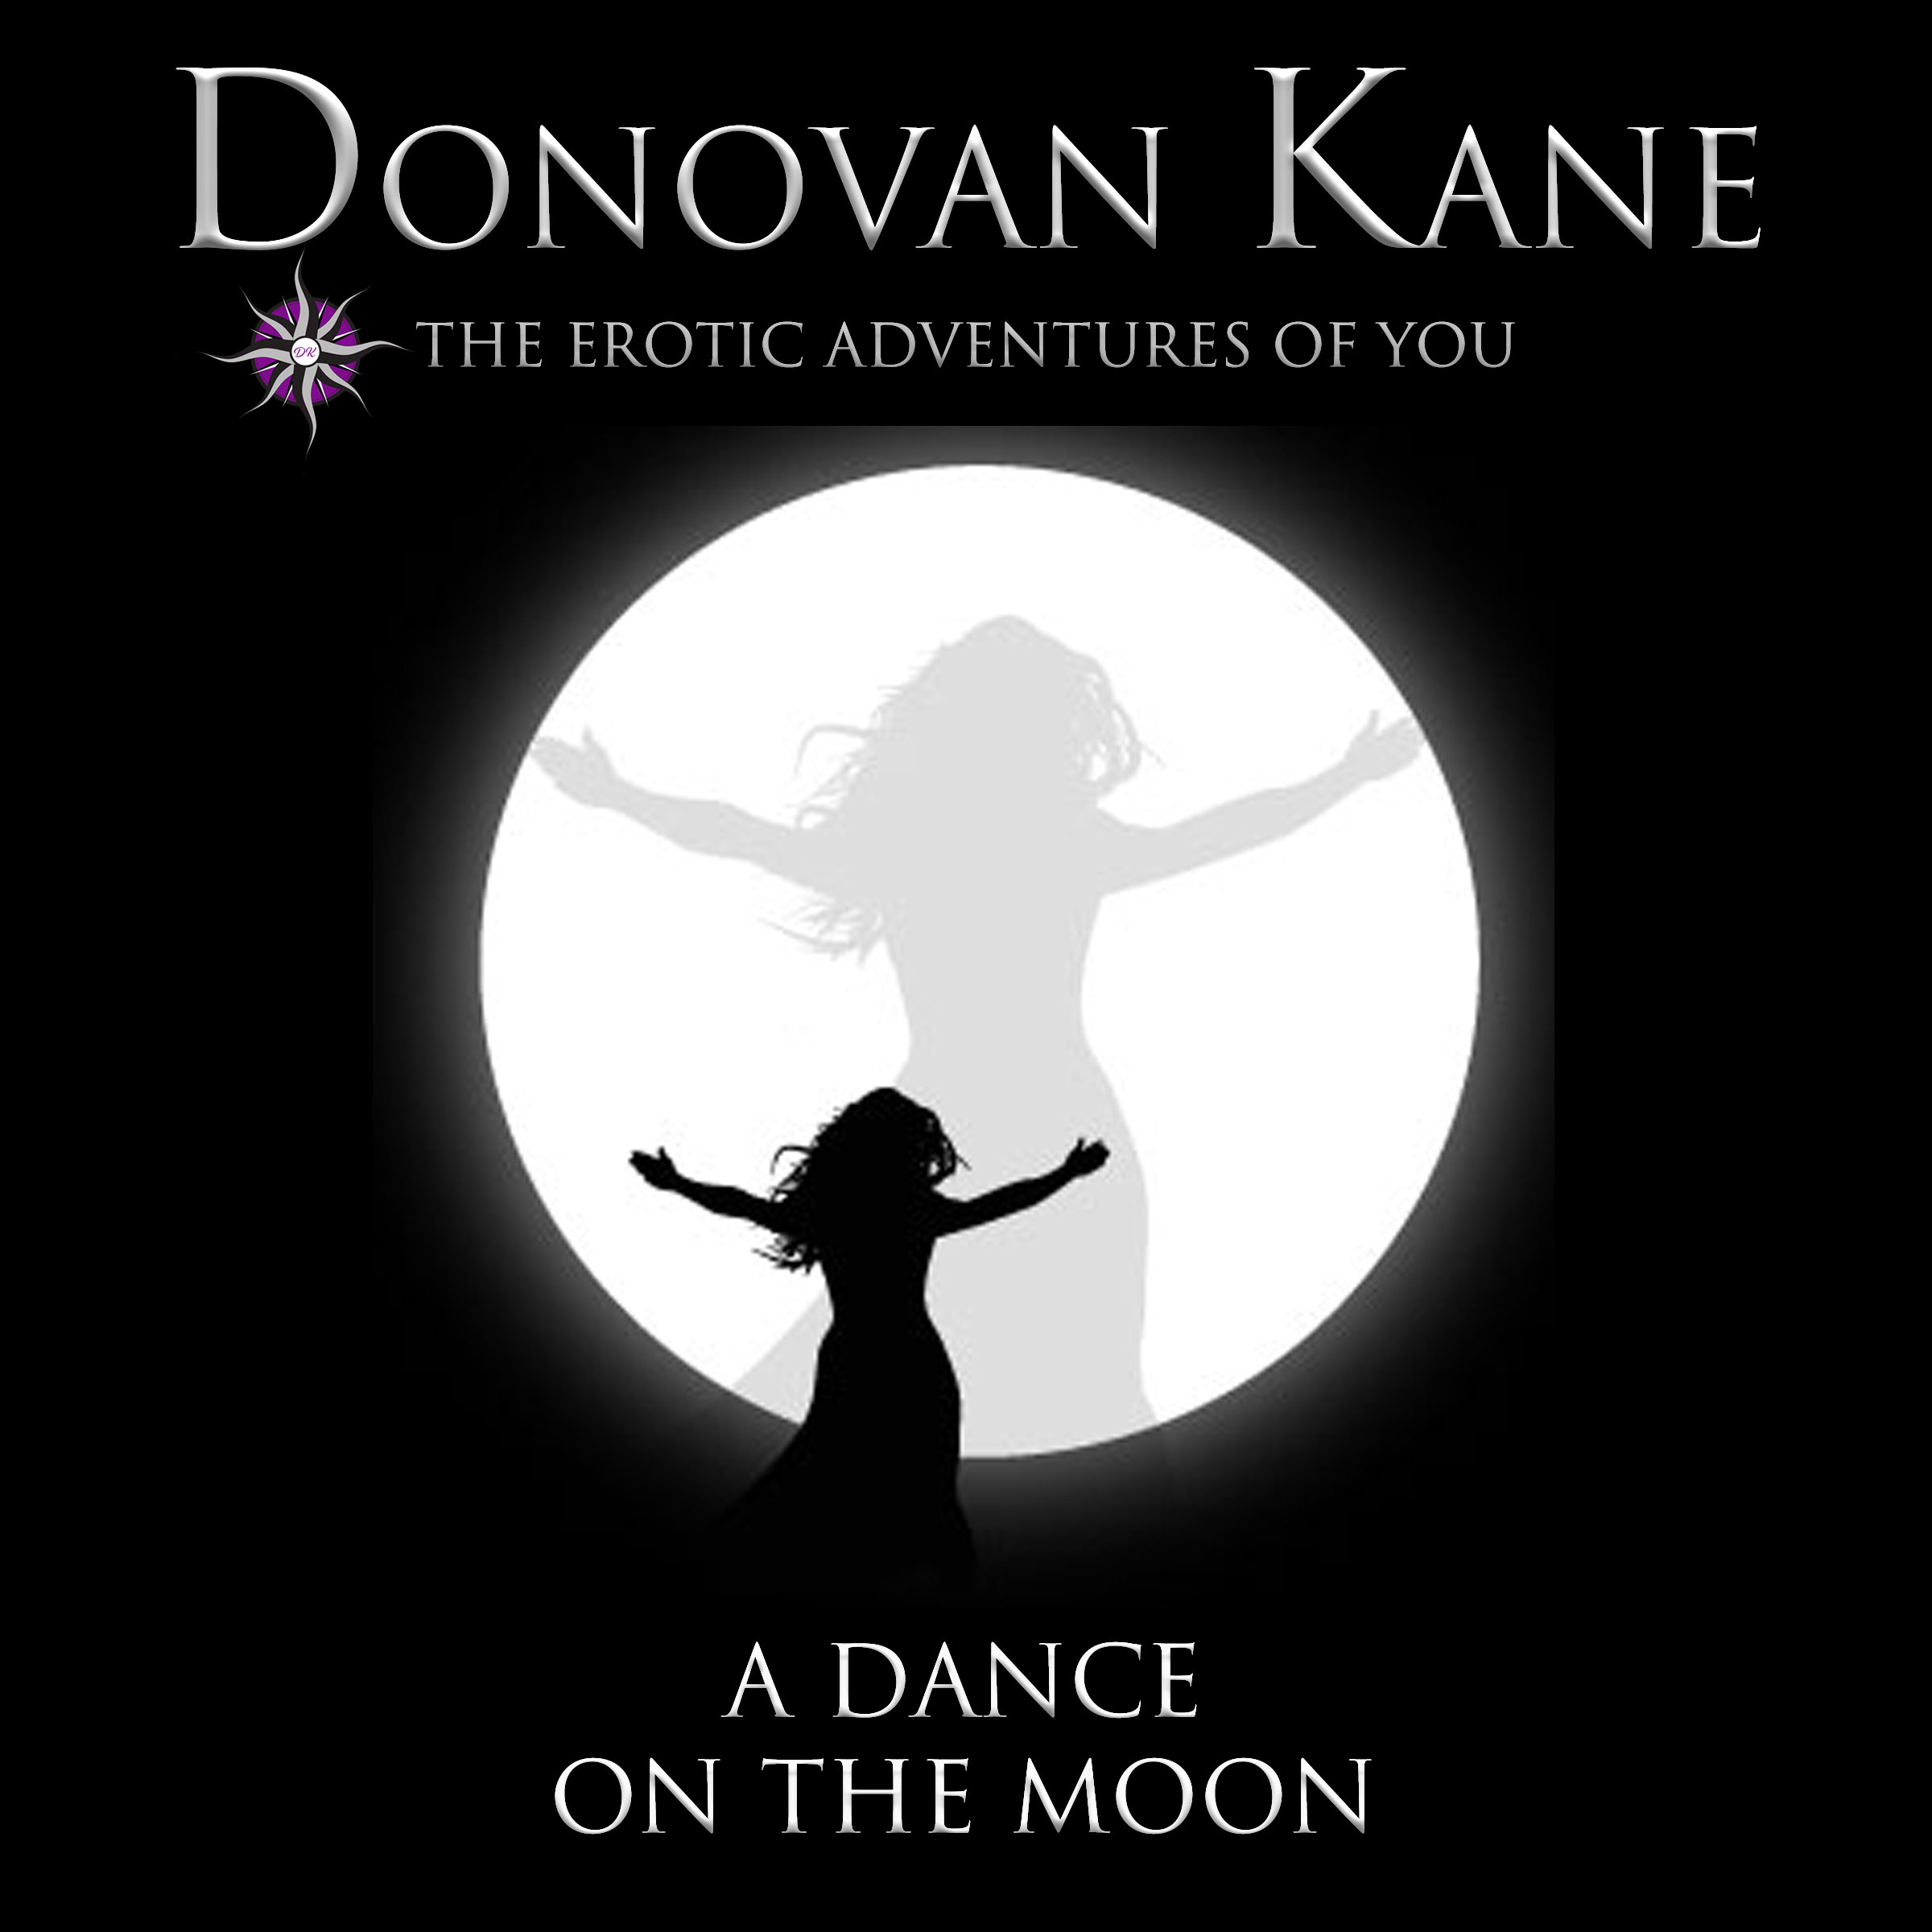 A Dance on the Moon: The Erotic Adventures of You